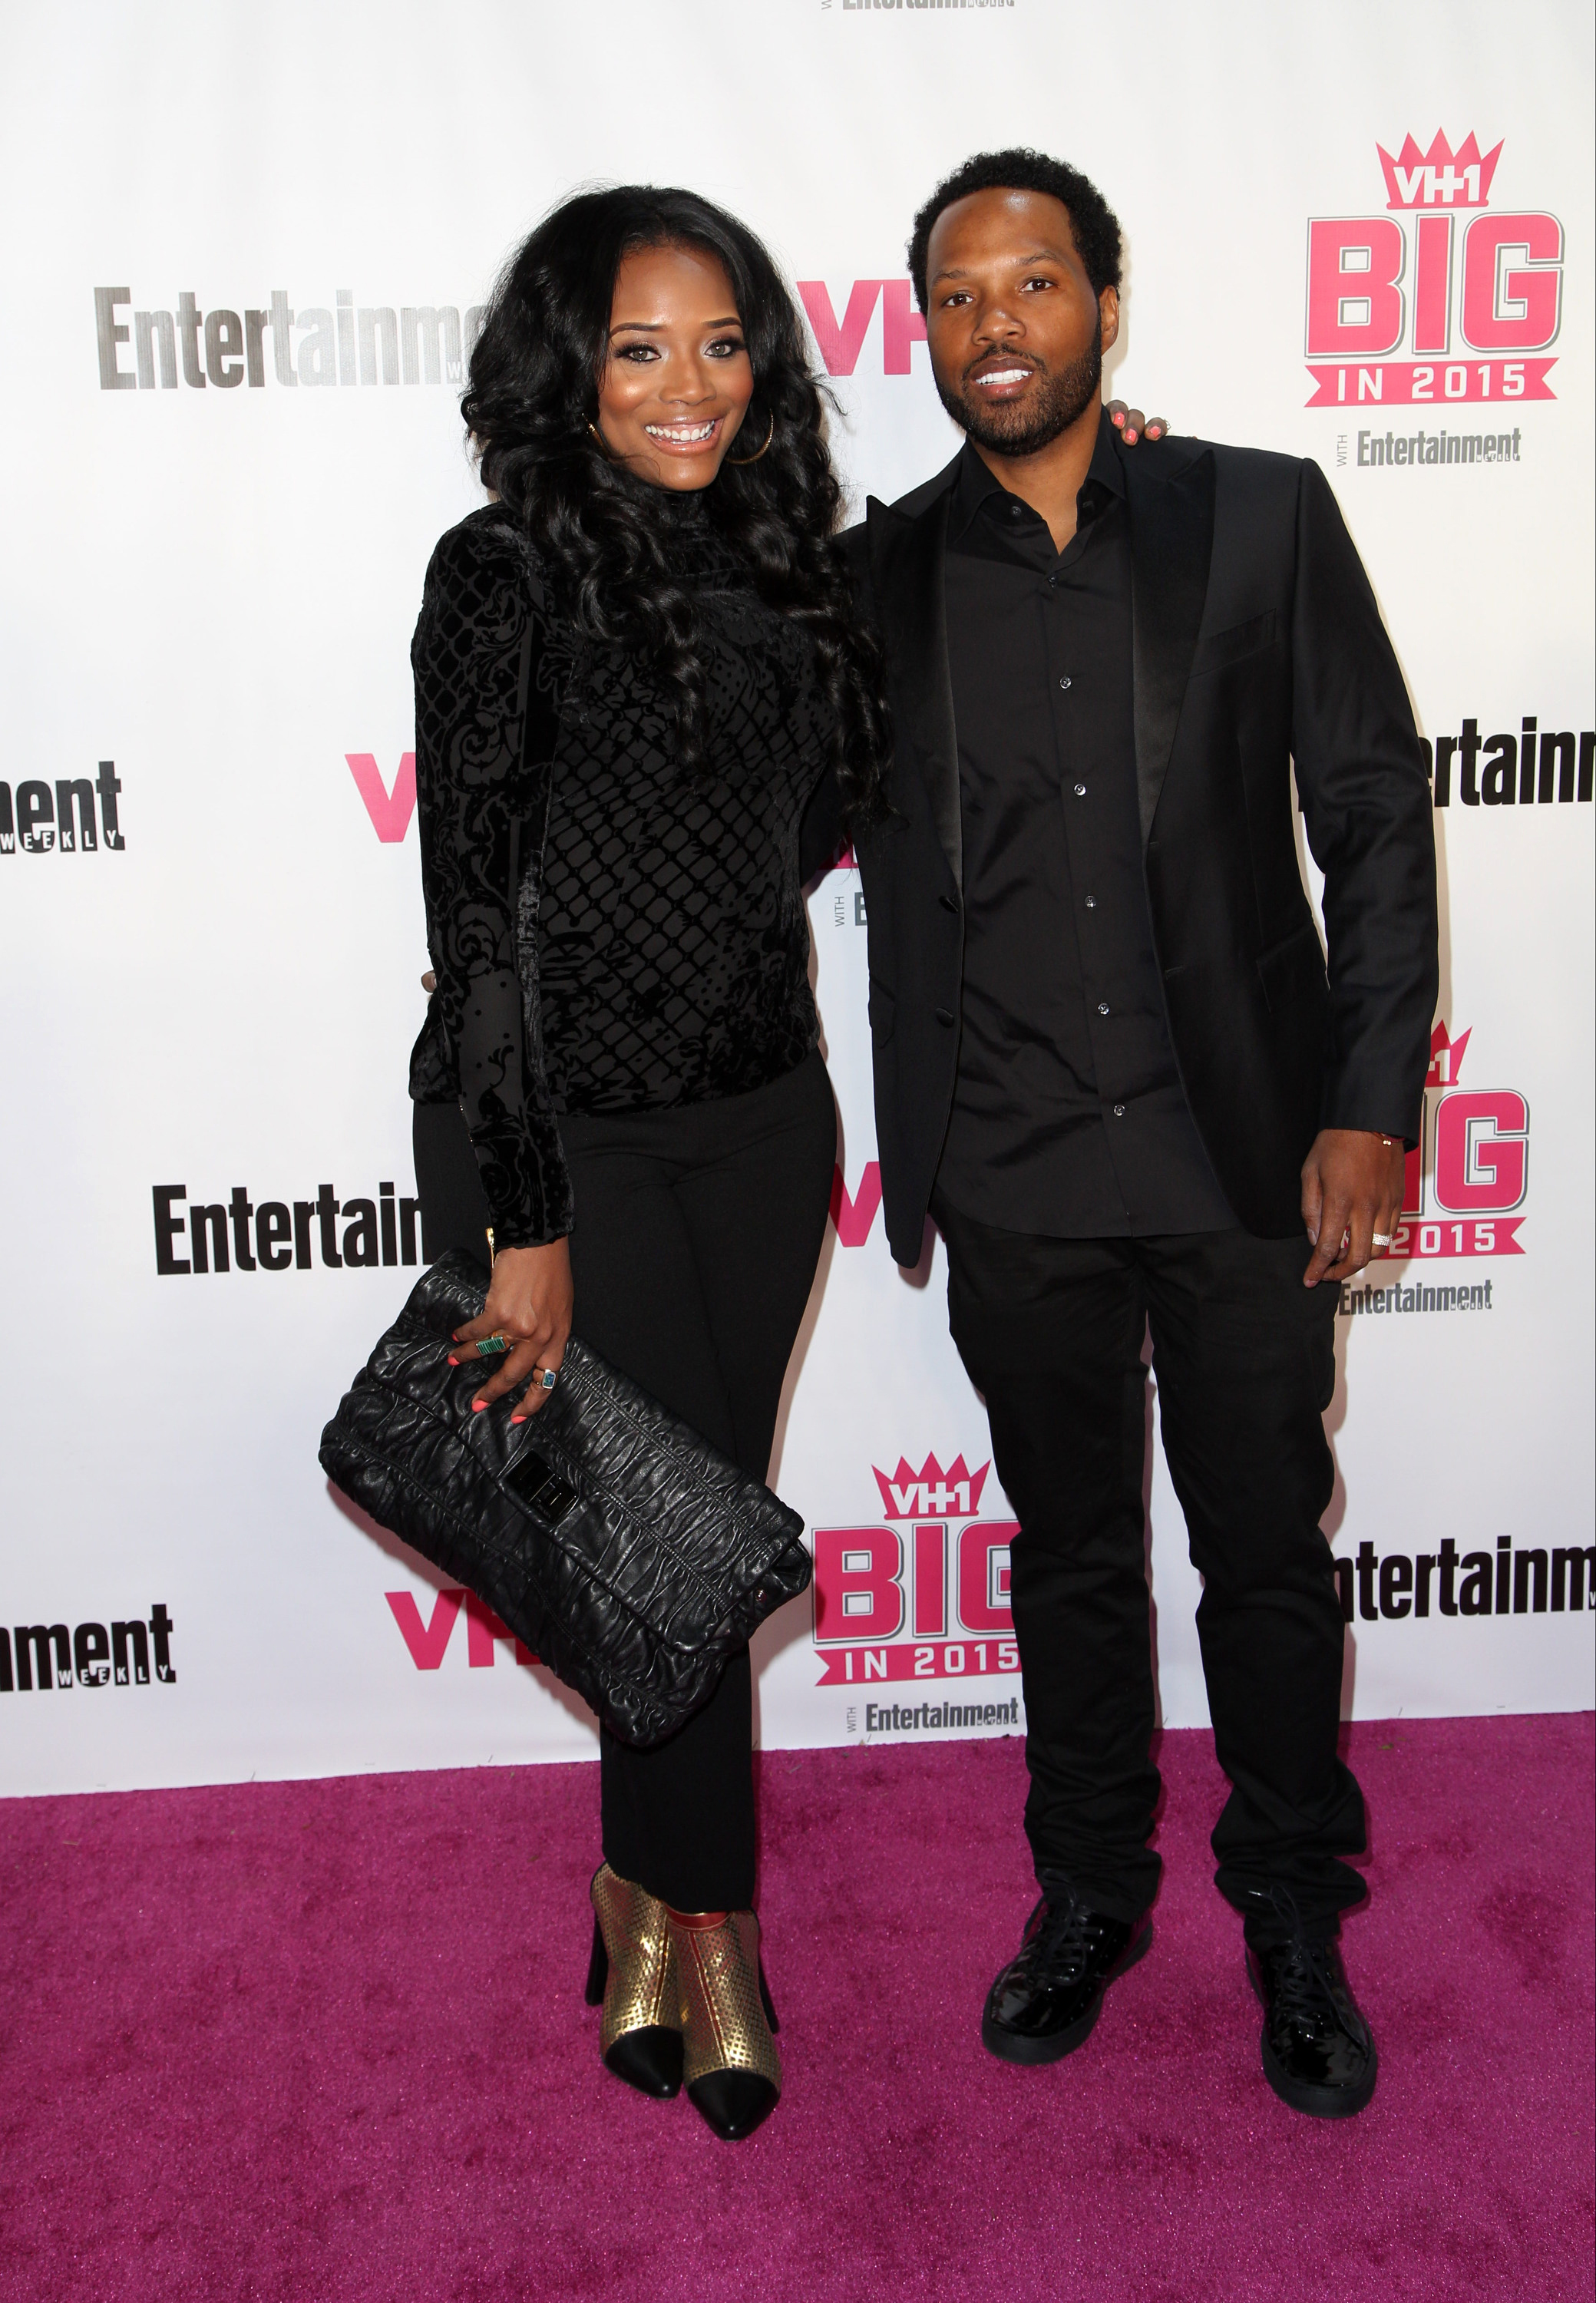 Celebrities attend VH1 Big In 2015 With Entertainment Weekly Awards at Pacific Design Center. Featuring: Yandy Smith Harris, Mendeecees Harris Where: Los Angeles, California, United States When: 15 Nov 2015 Credit: Brian To/WENN.com